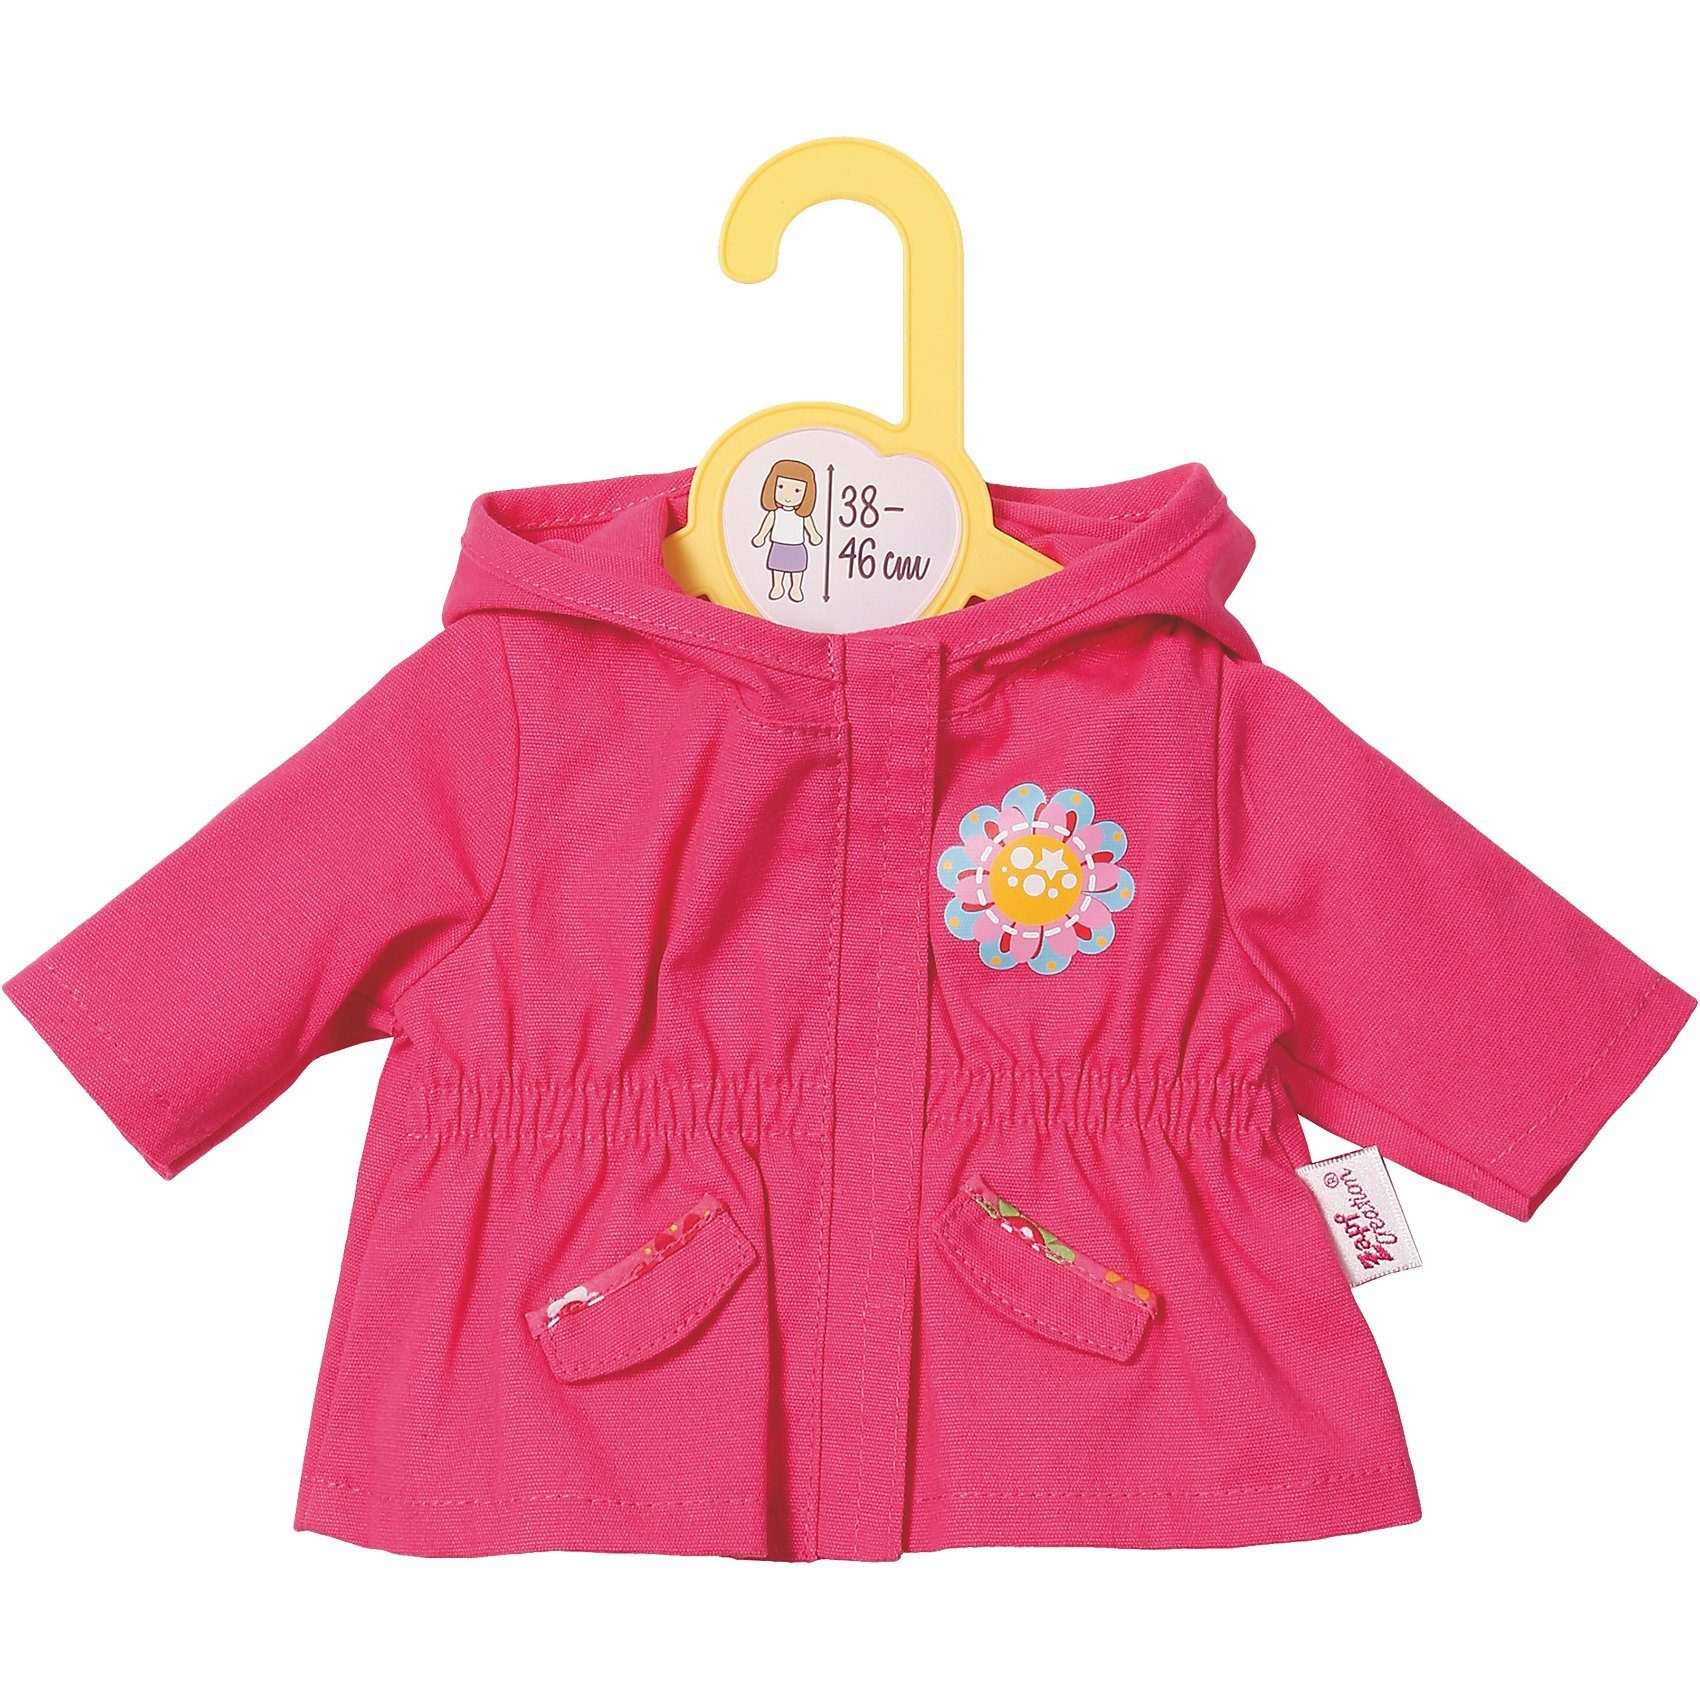 Zapf Creation Dolly Moda Puppenkleidung Jacket, pink 38-46 cm